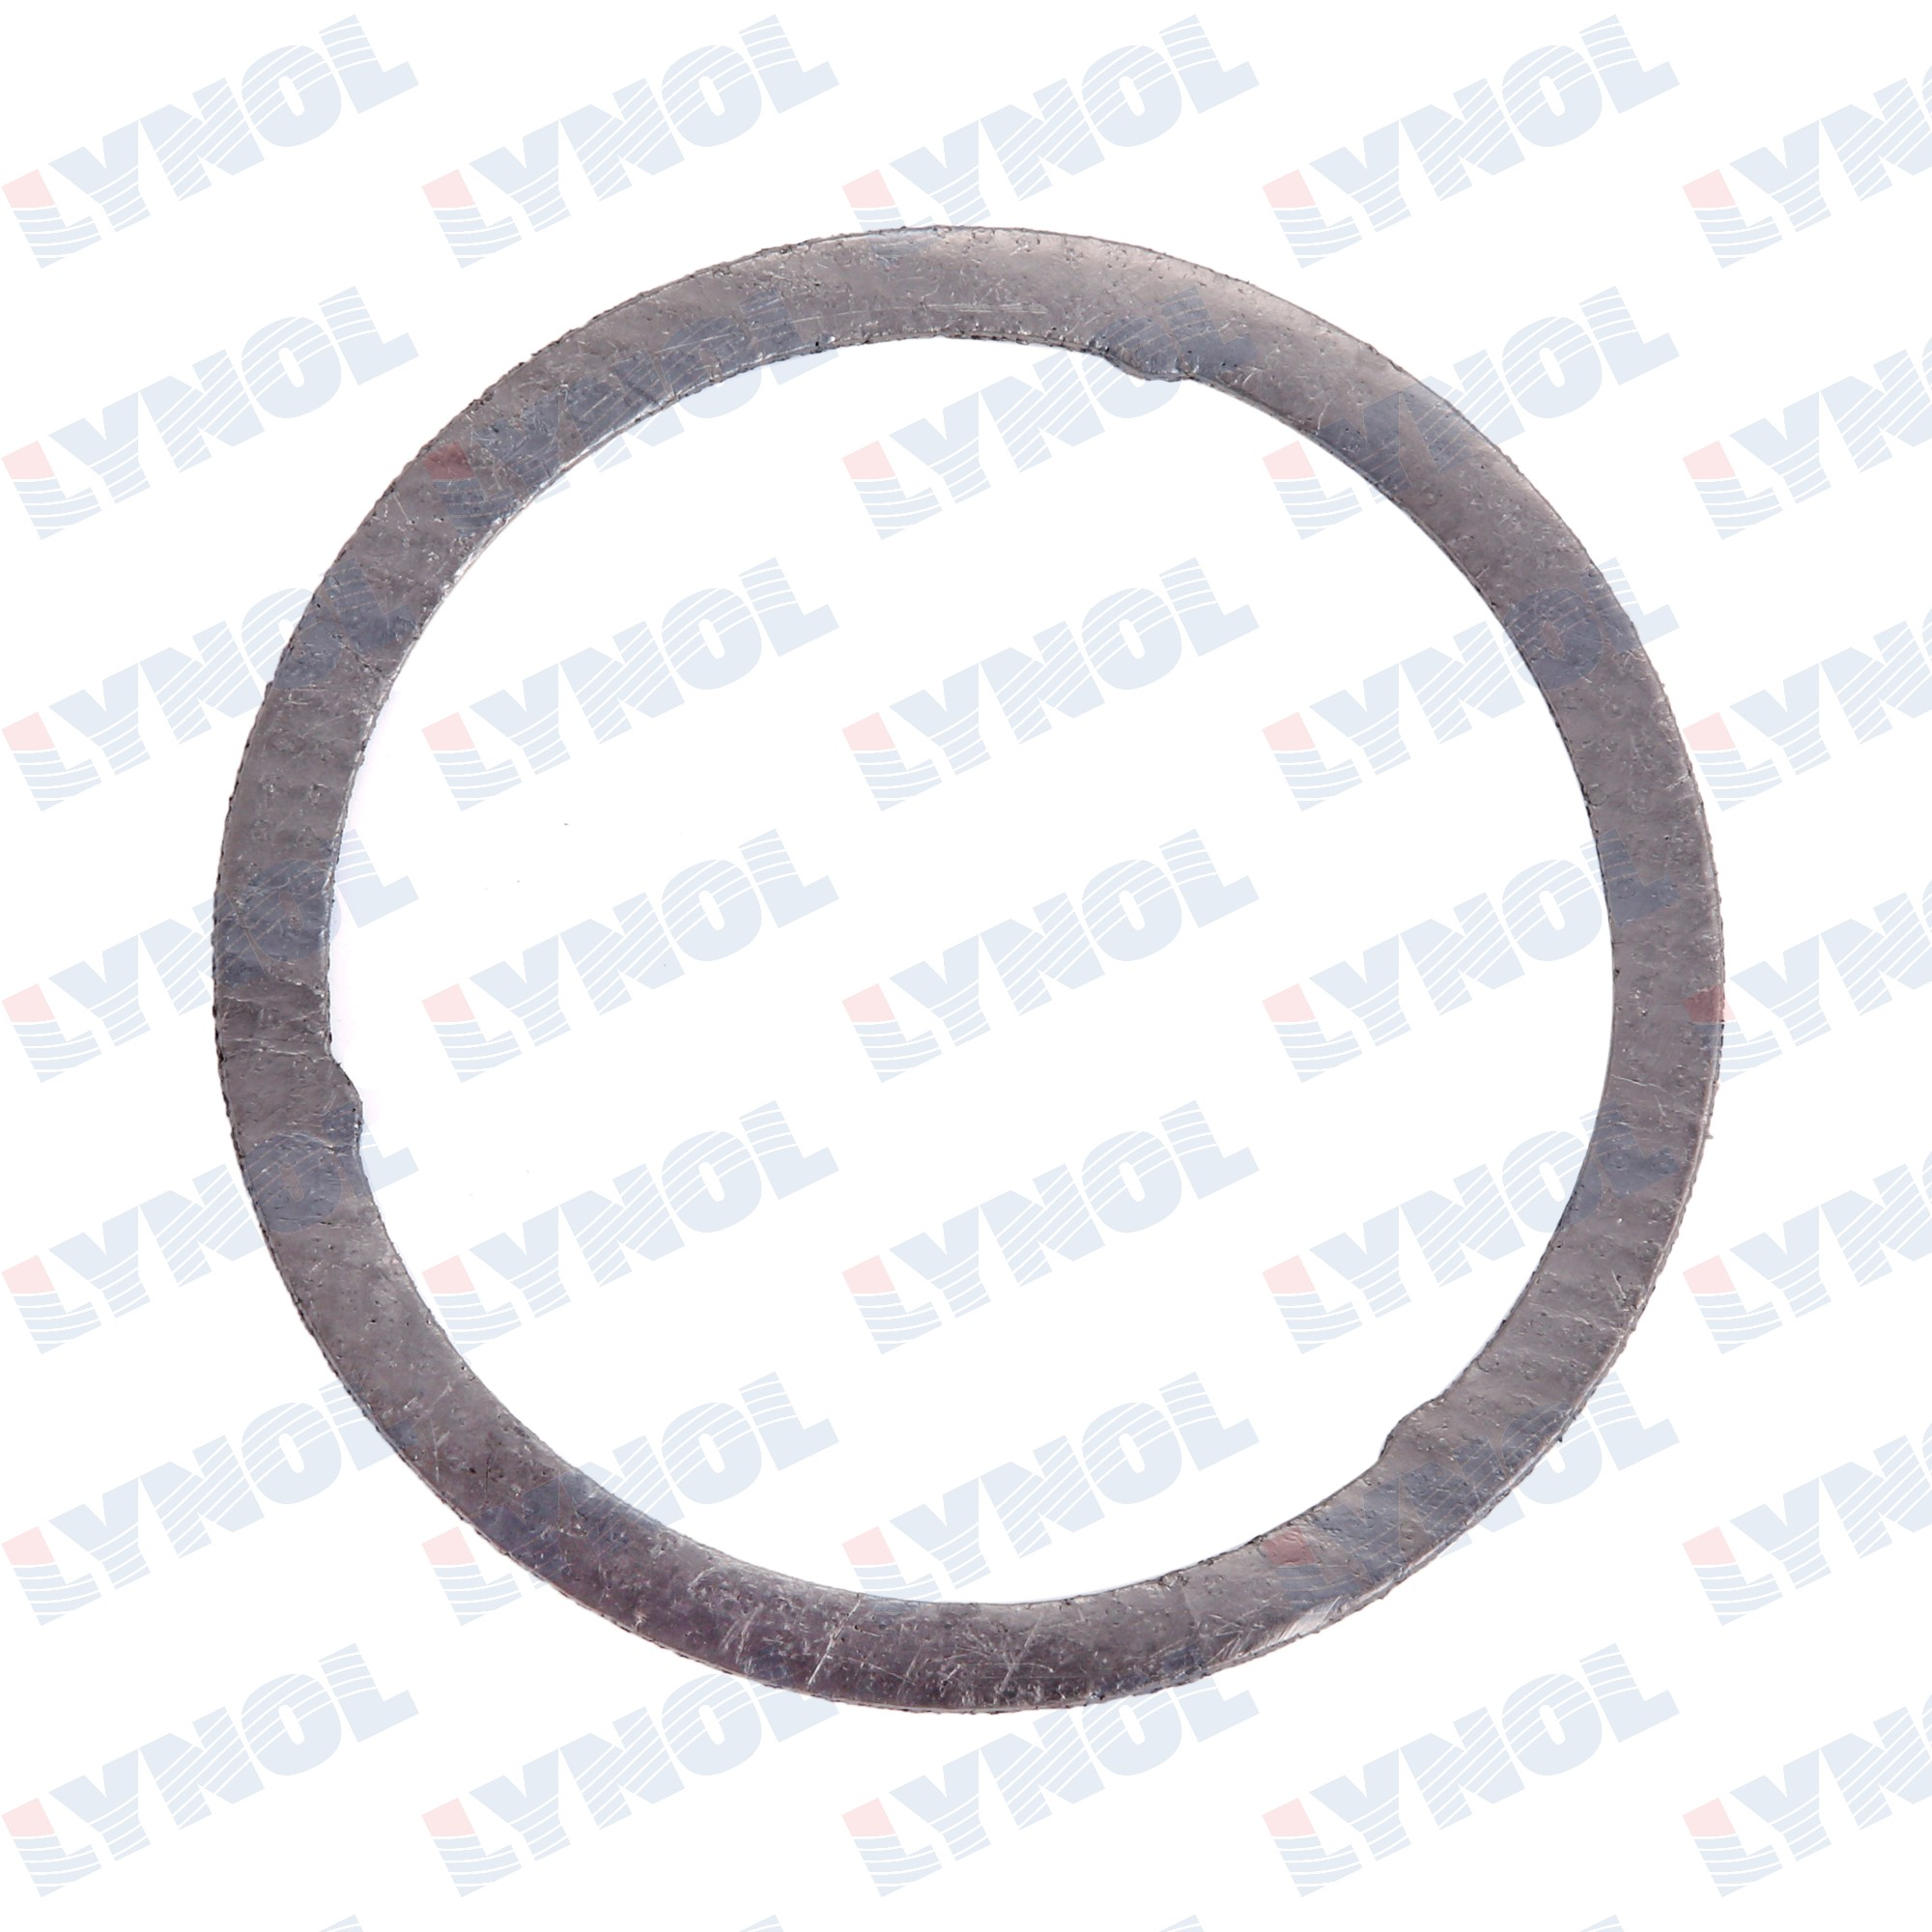 "4501039 - GASKET - Volvo Exhaust Pipe Flange GASKET 21095721/21095721/21021846 4.750"" OD x 4"" ID"